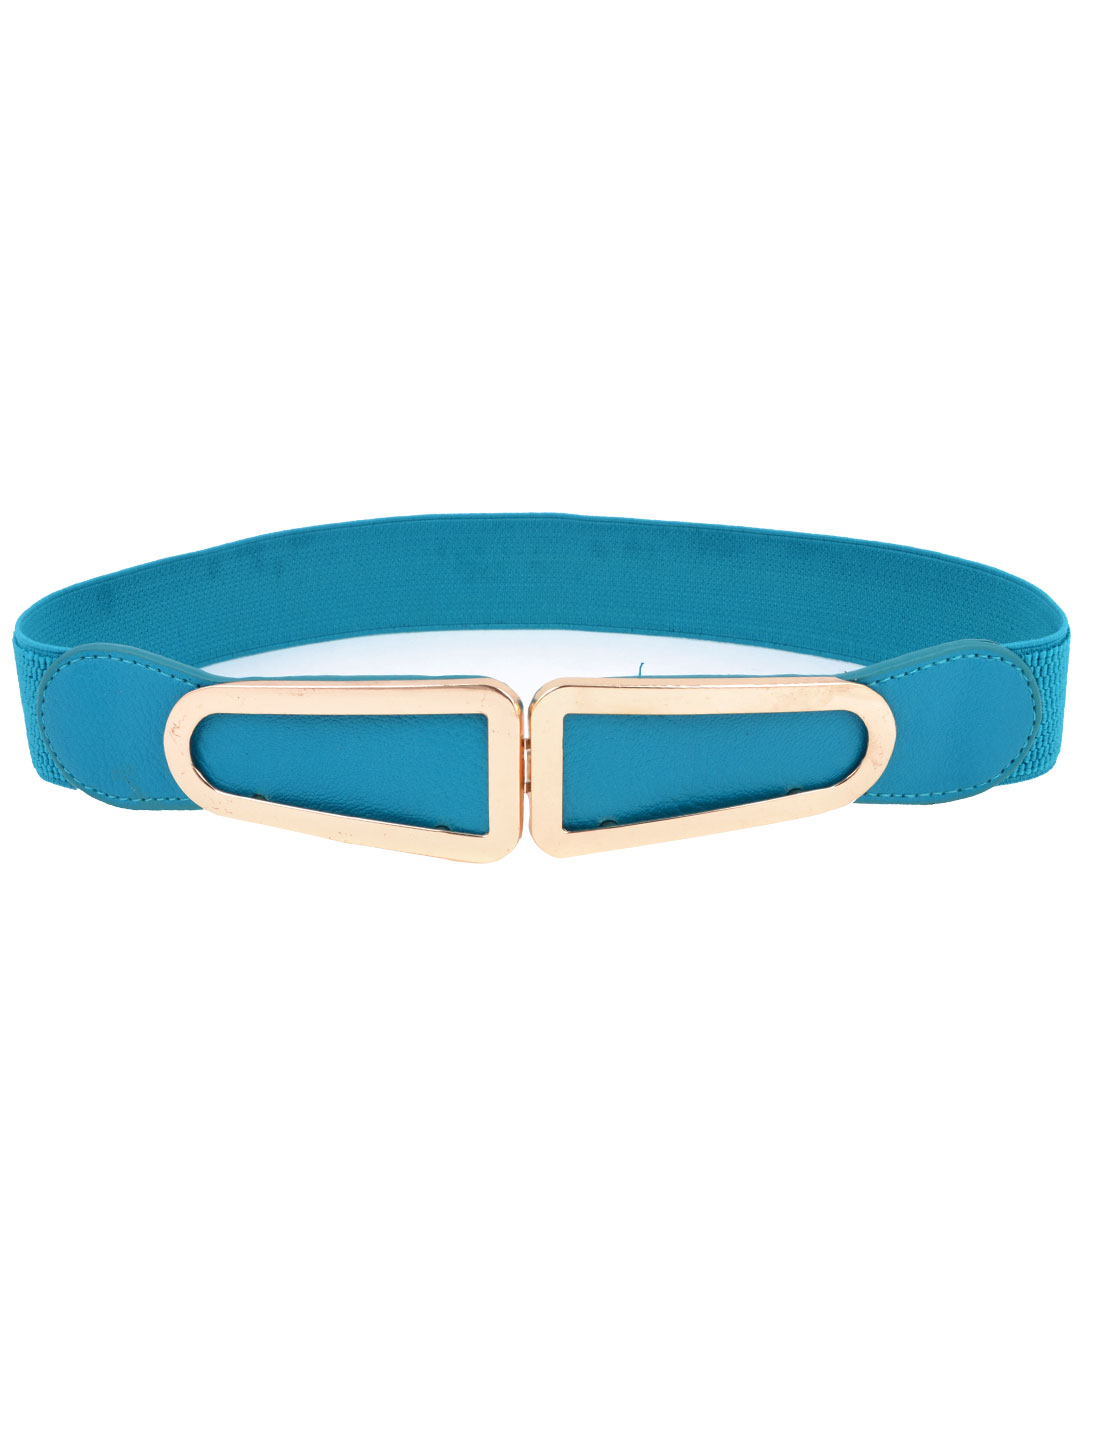 Women D Style Metal Interlocking Buckle 3.5cm Wide Stretch Belt Teal